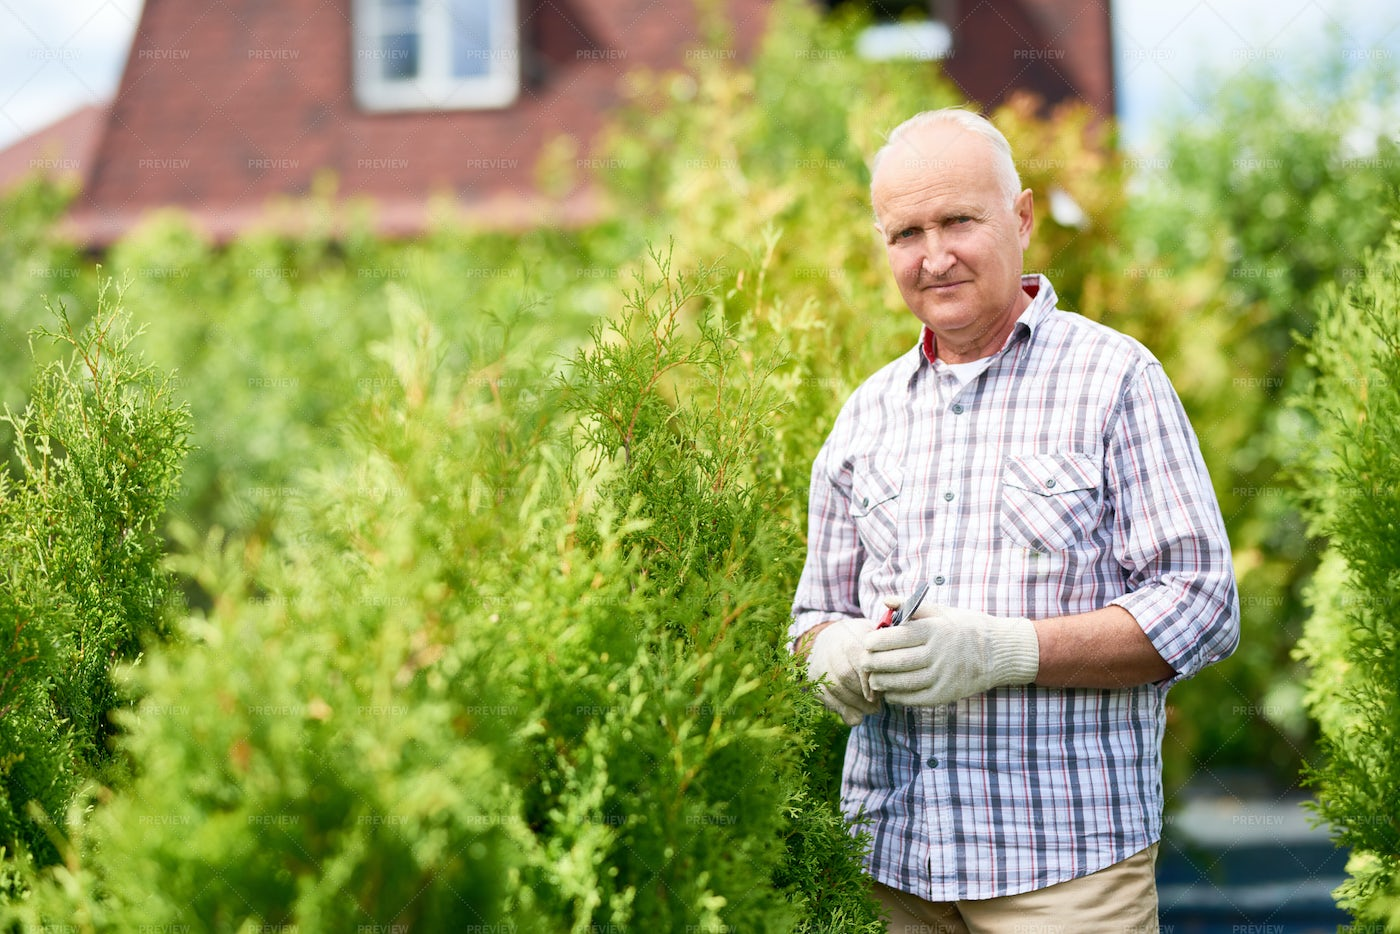 Senior Man Working With Plants In...: Stock Photos